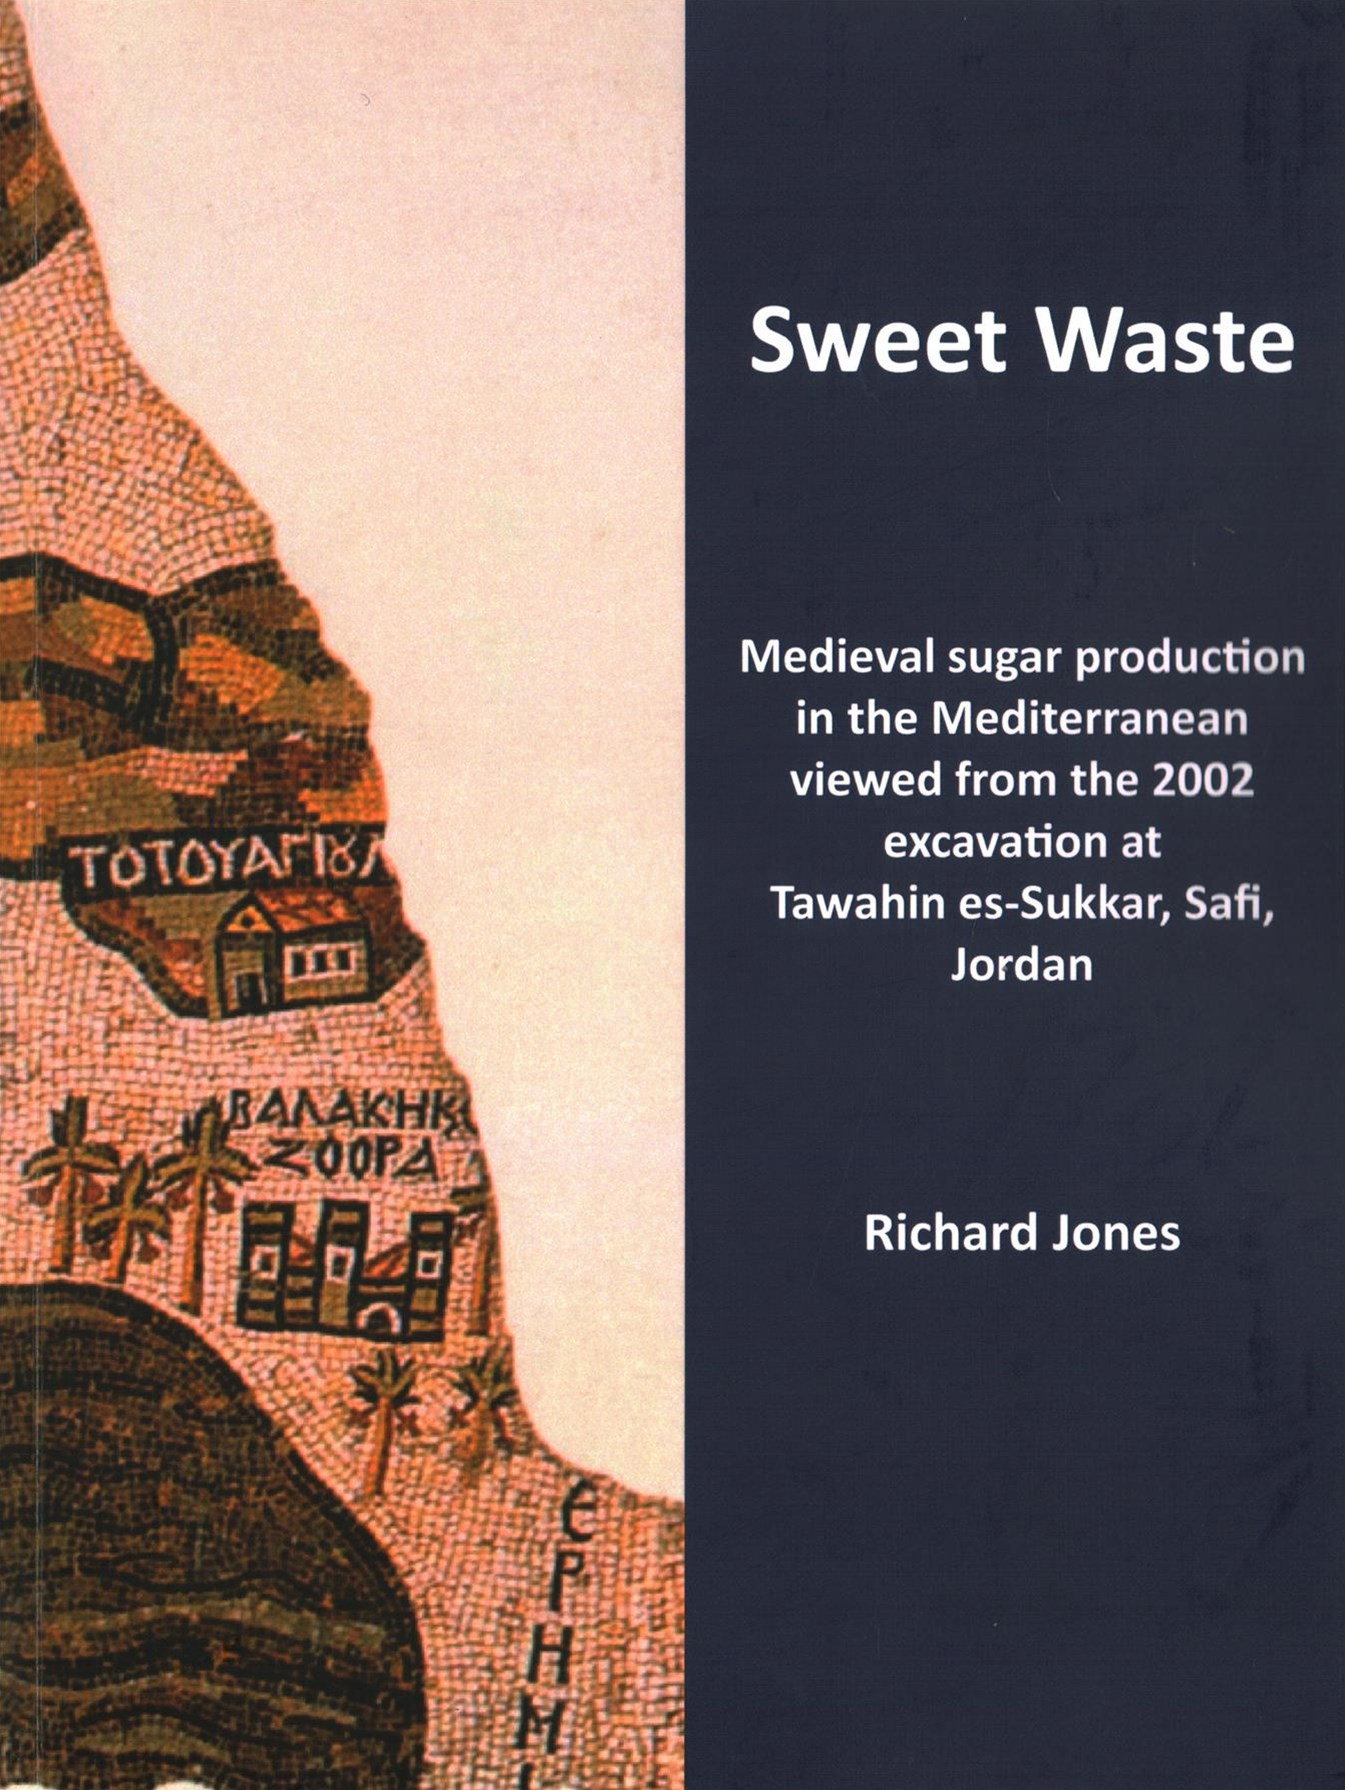 Sweet Waste: Medieval Sugar Production in the Mediterranean Viewed from the 2002 Excavations at Taw